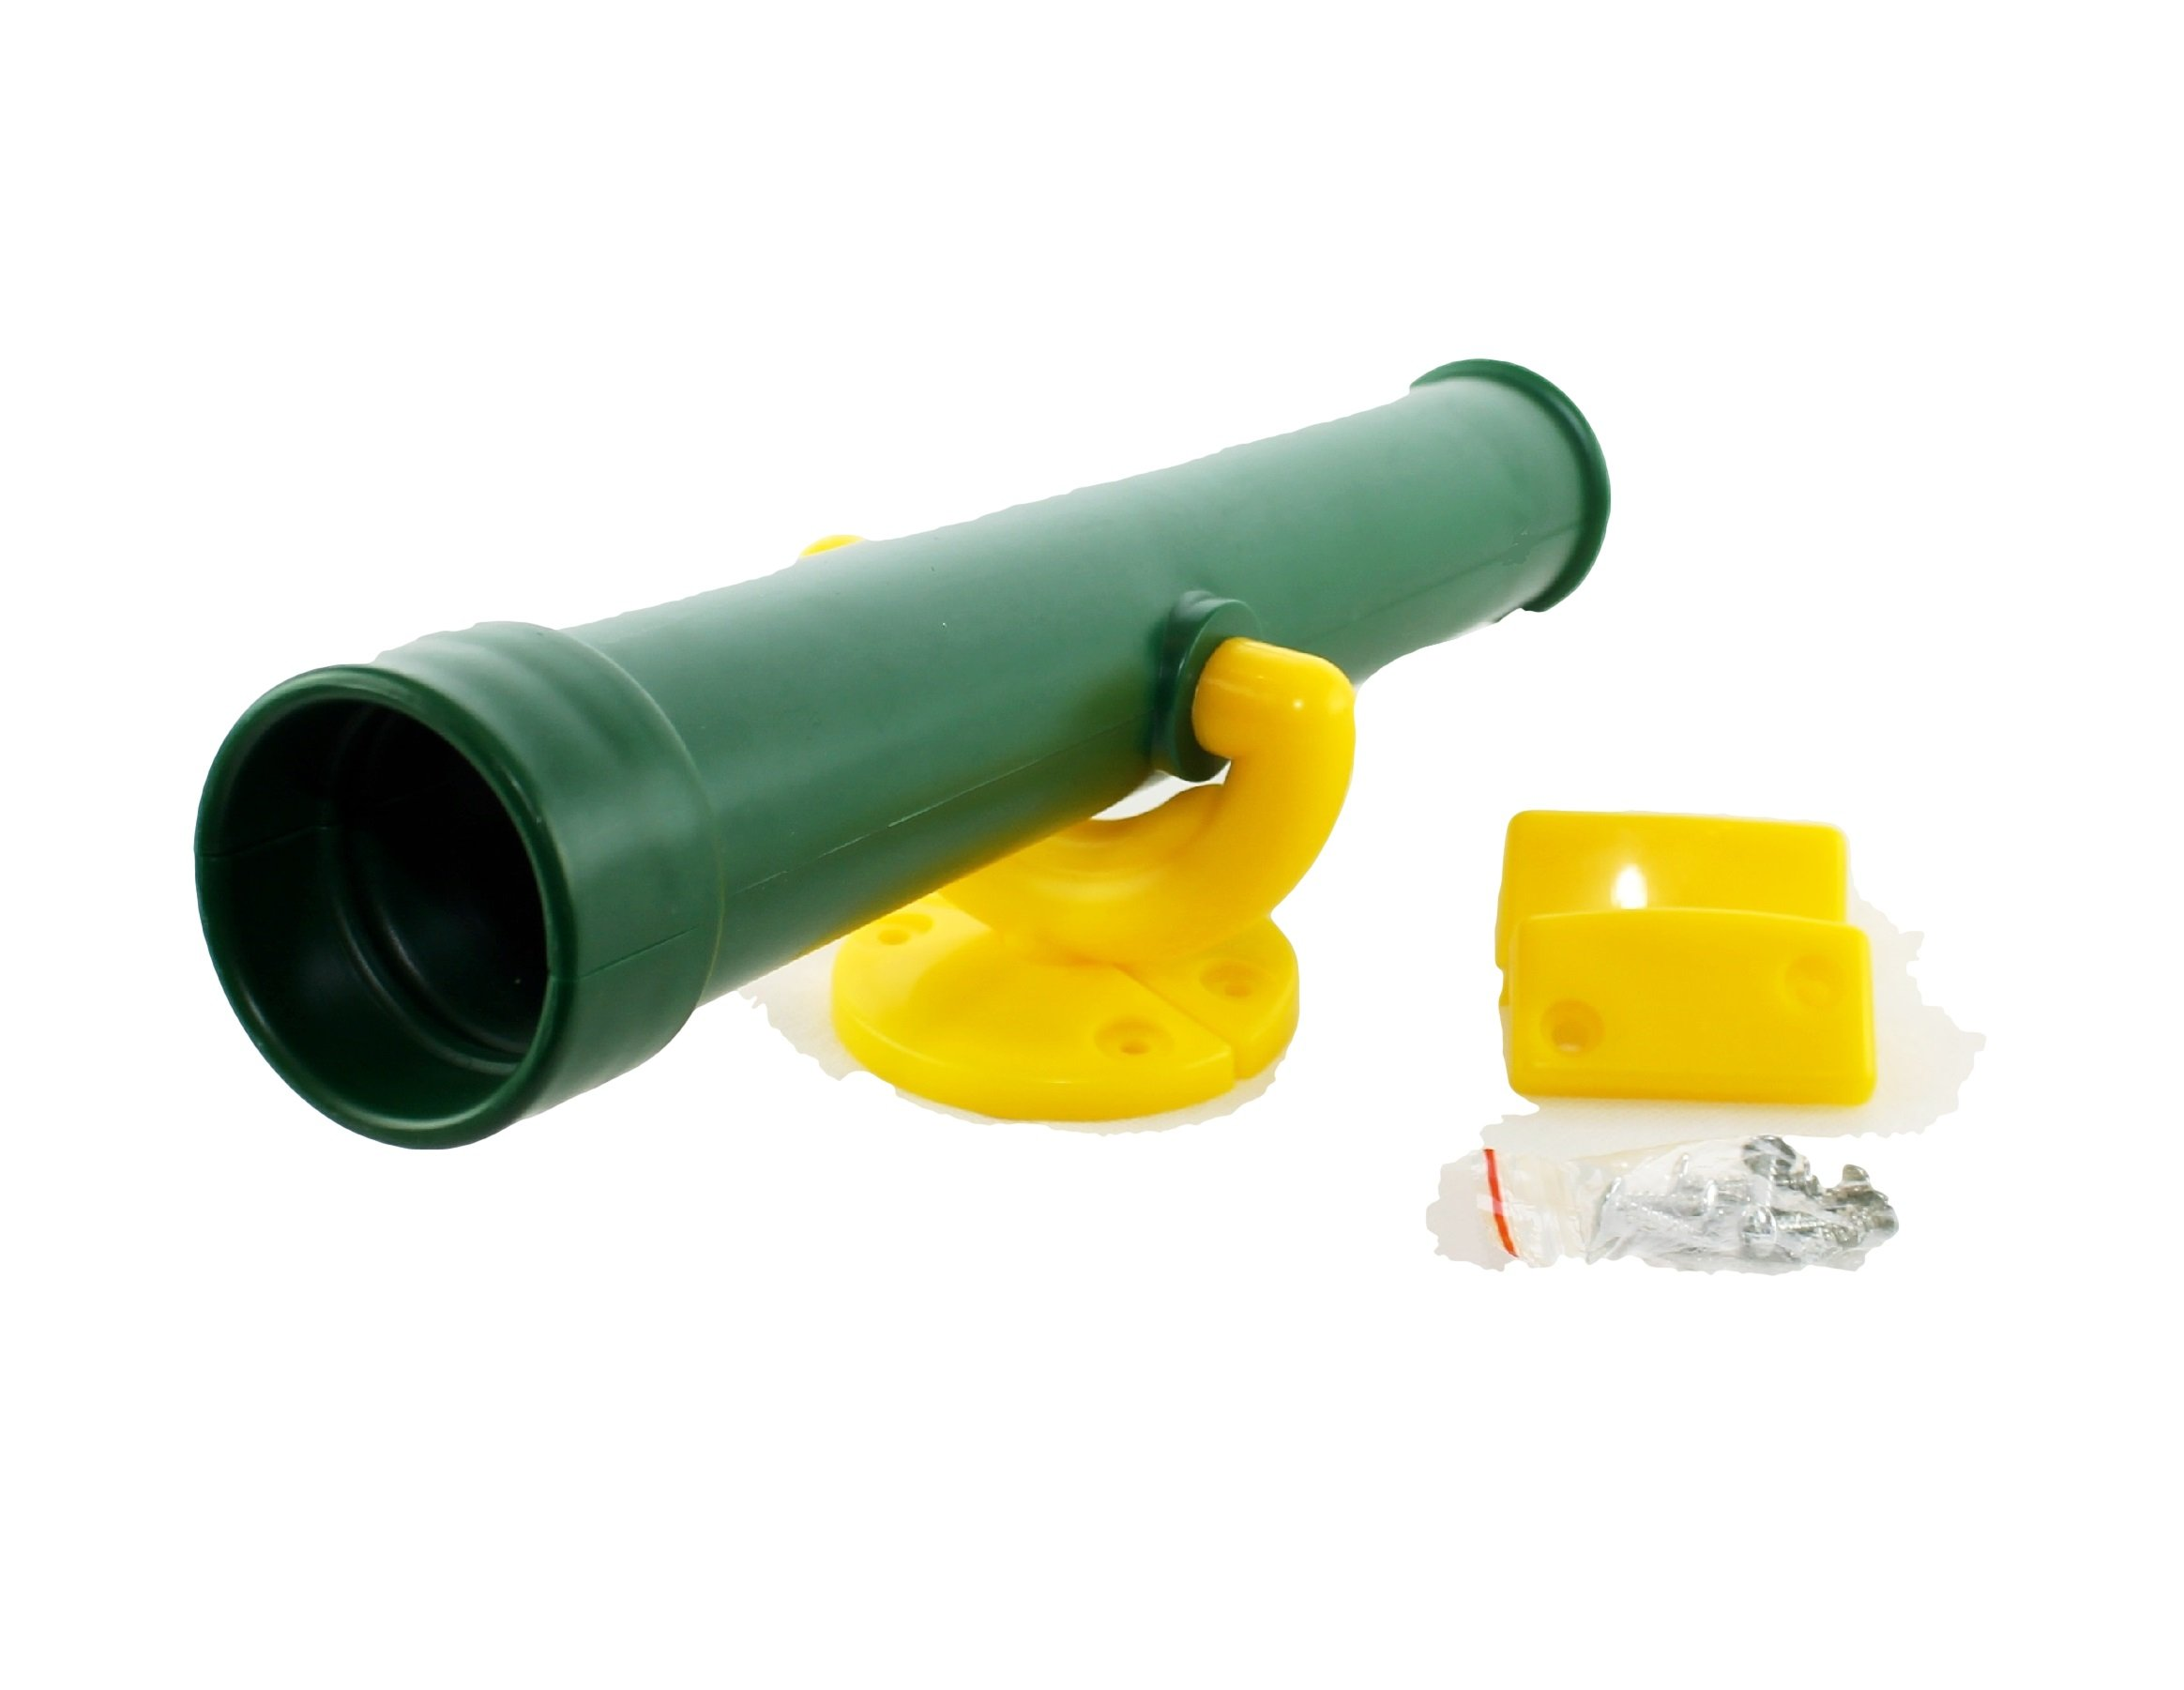 HIKS Green Kids Childrens Toy Telescope Also Available in Red, Yellow and Blue Ideal for Climbing Frames, Tree House, Play House and Dens by HIKS Products